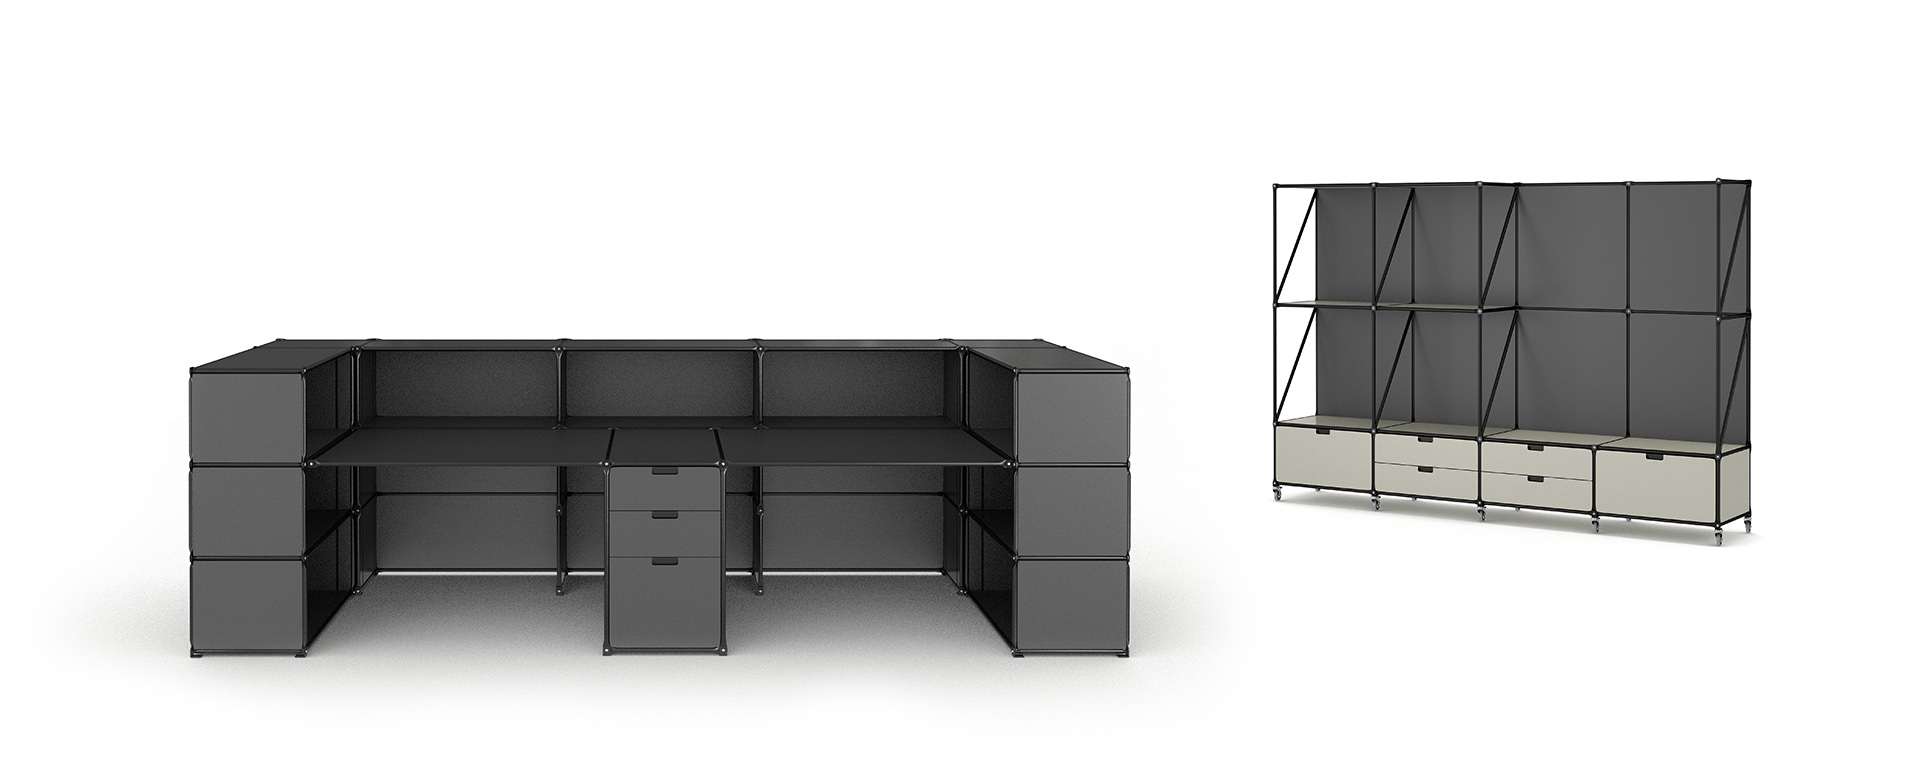 Schubladenschrank Hoch System 180 Modular Design Made In Berlin